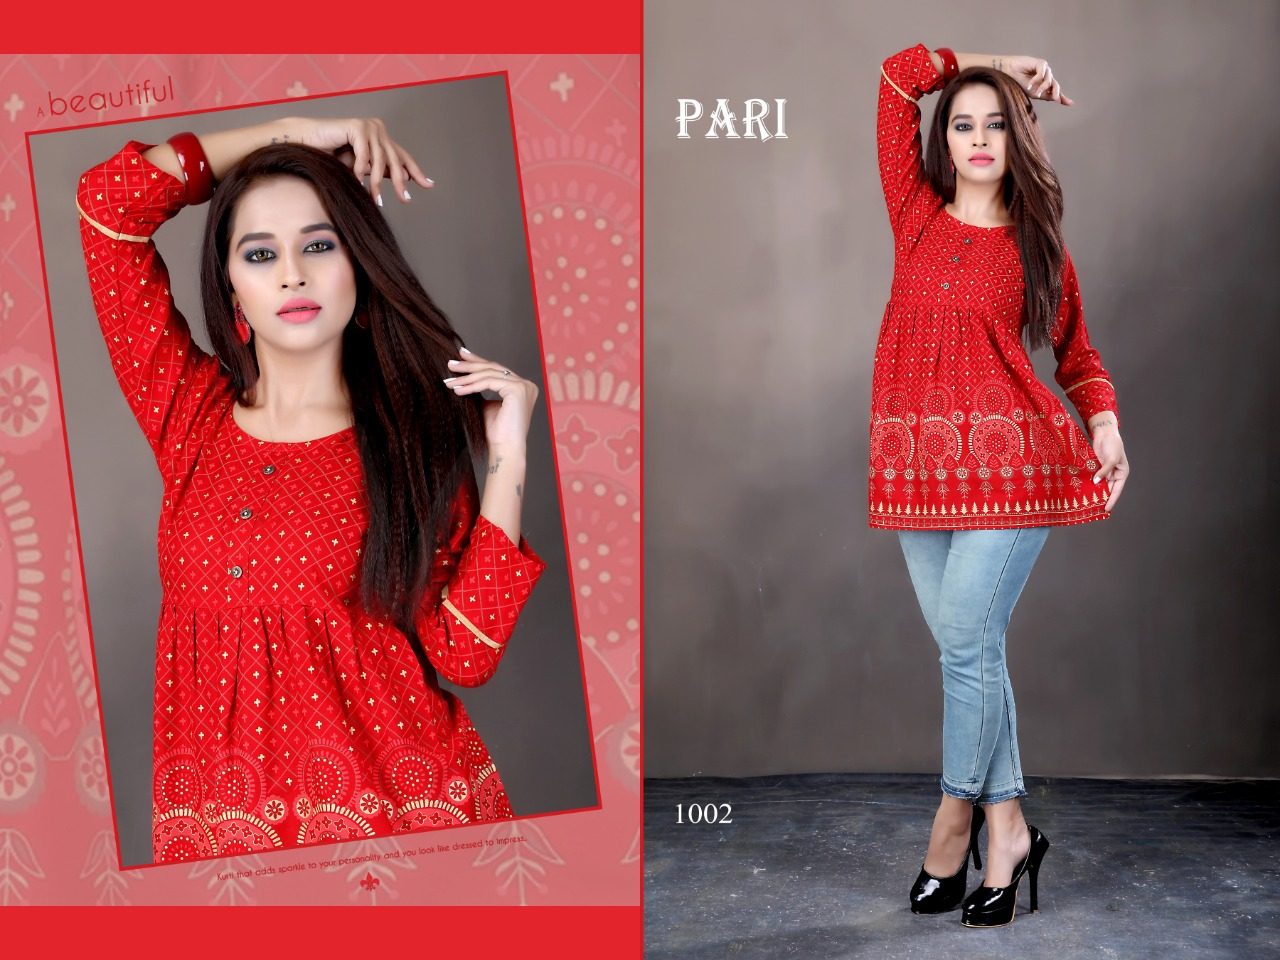 Pari Short Tops Wholesale Catalog 8 Pcs 3 - Pari Short Tops Wholesale Catalog 8 Pcs